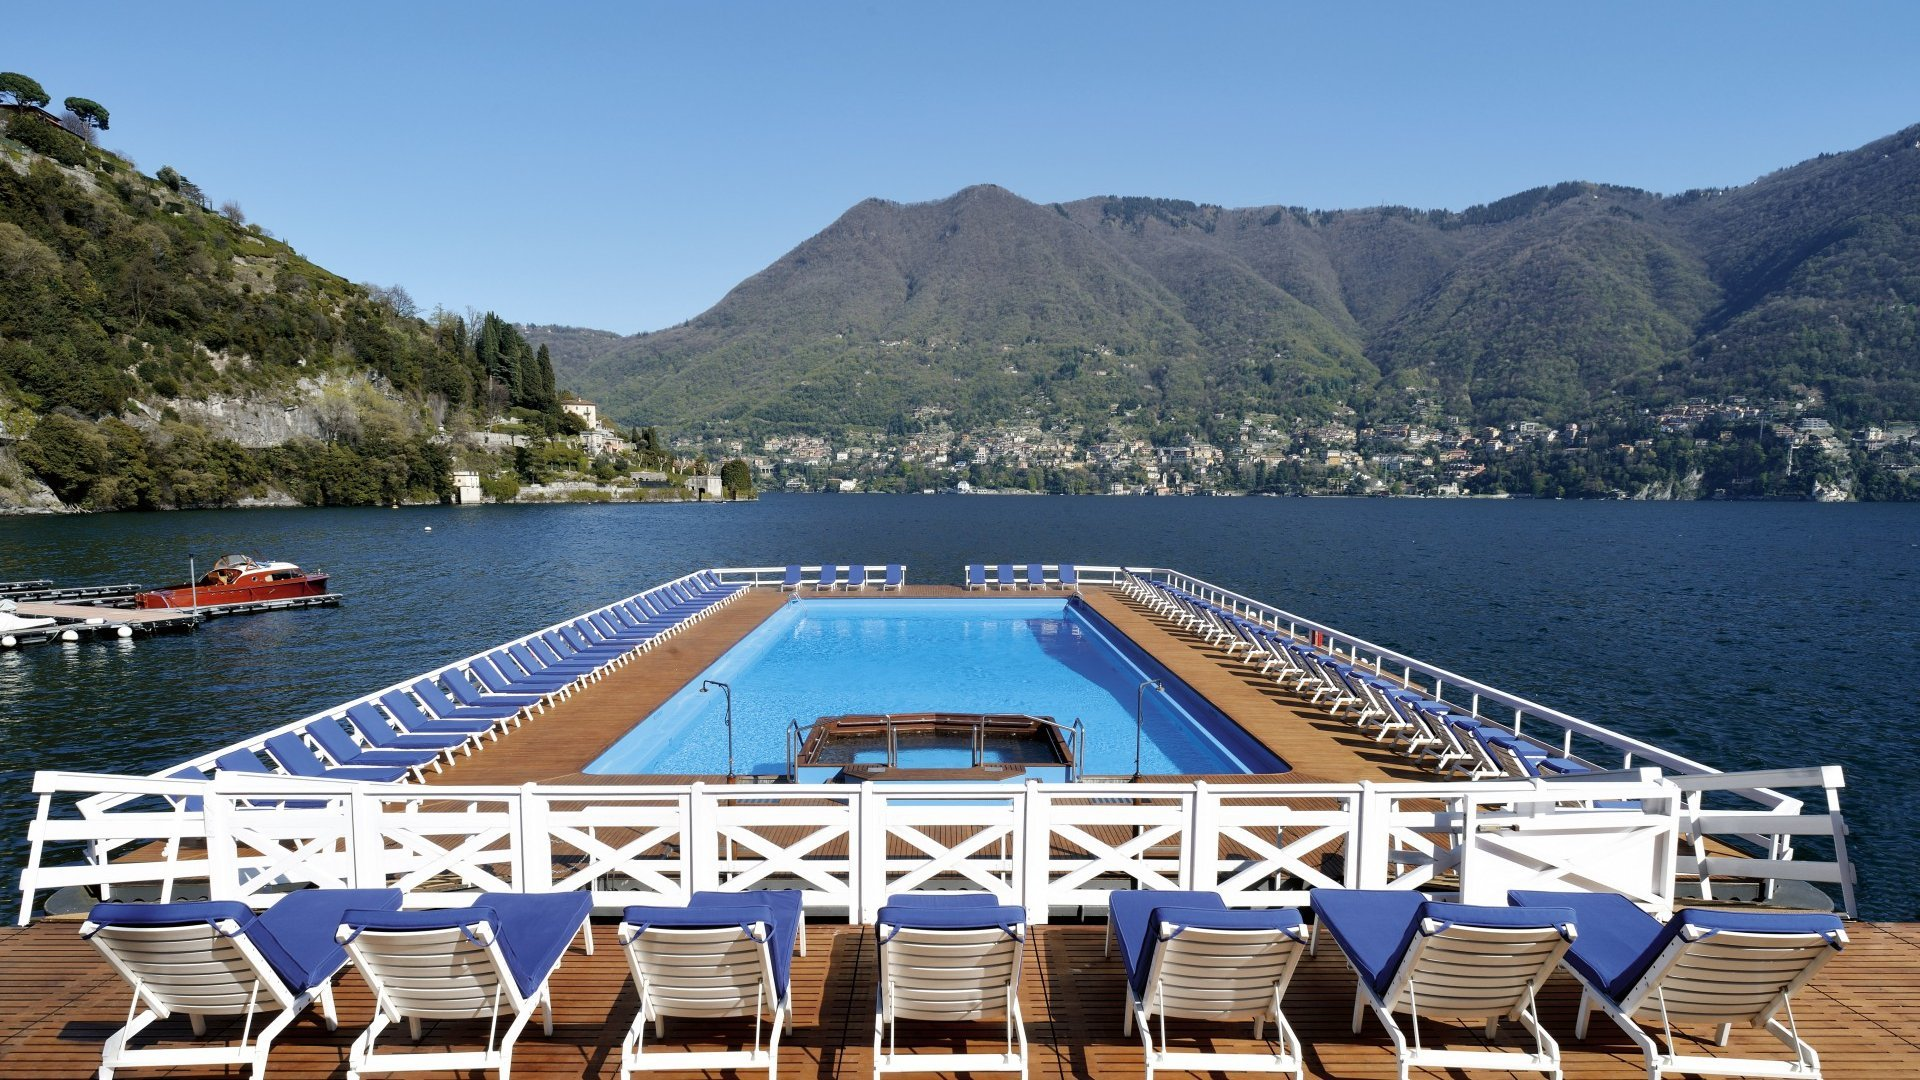 Villa D'Este hotel, Como lake, sharing swimming pool